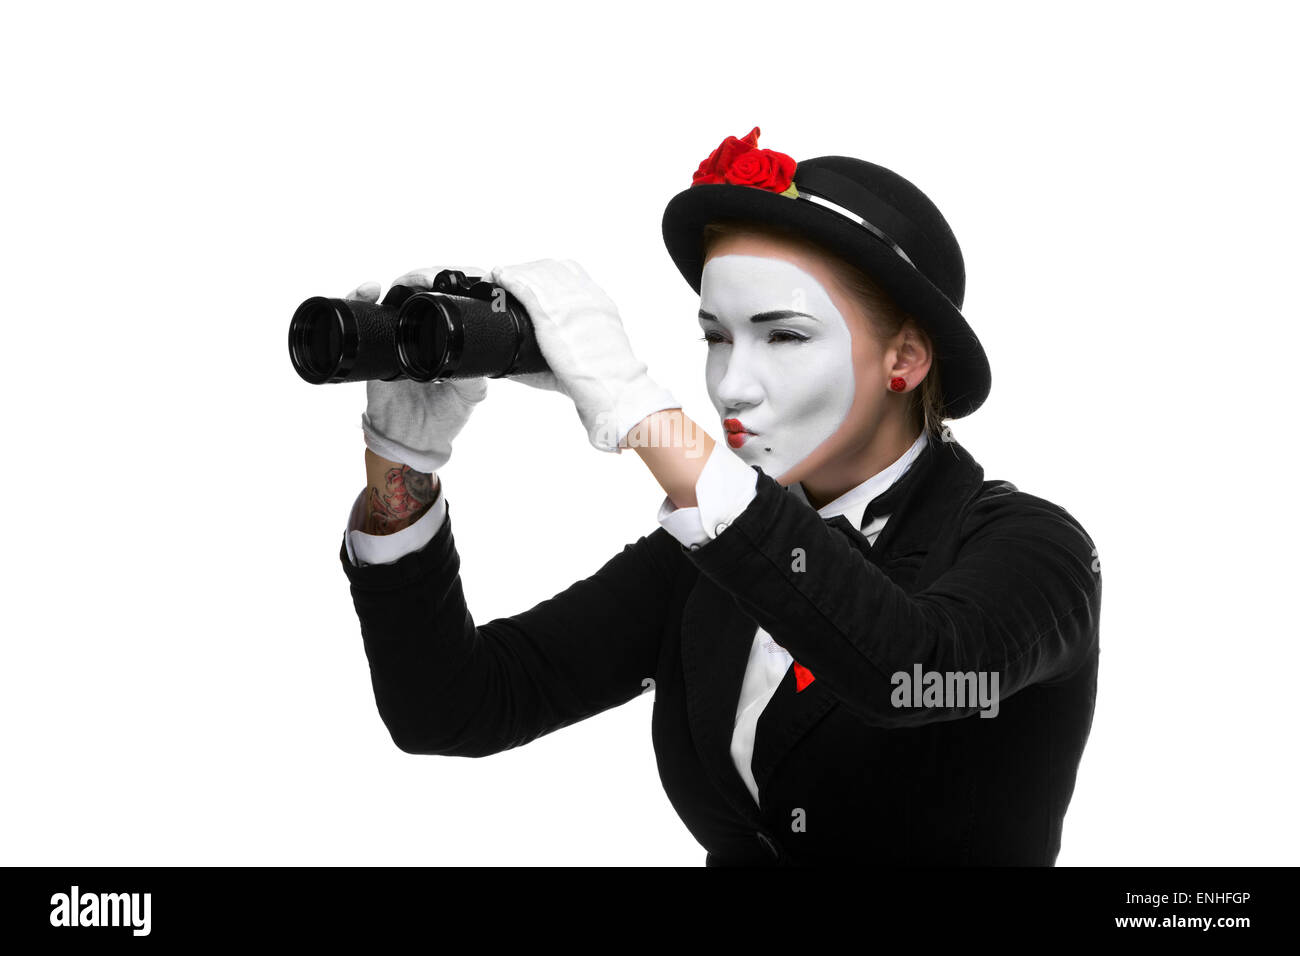 Portrait of the searching mime with binoculars - Stock Image